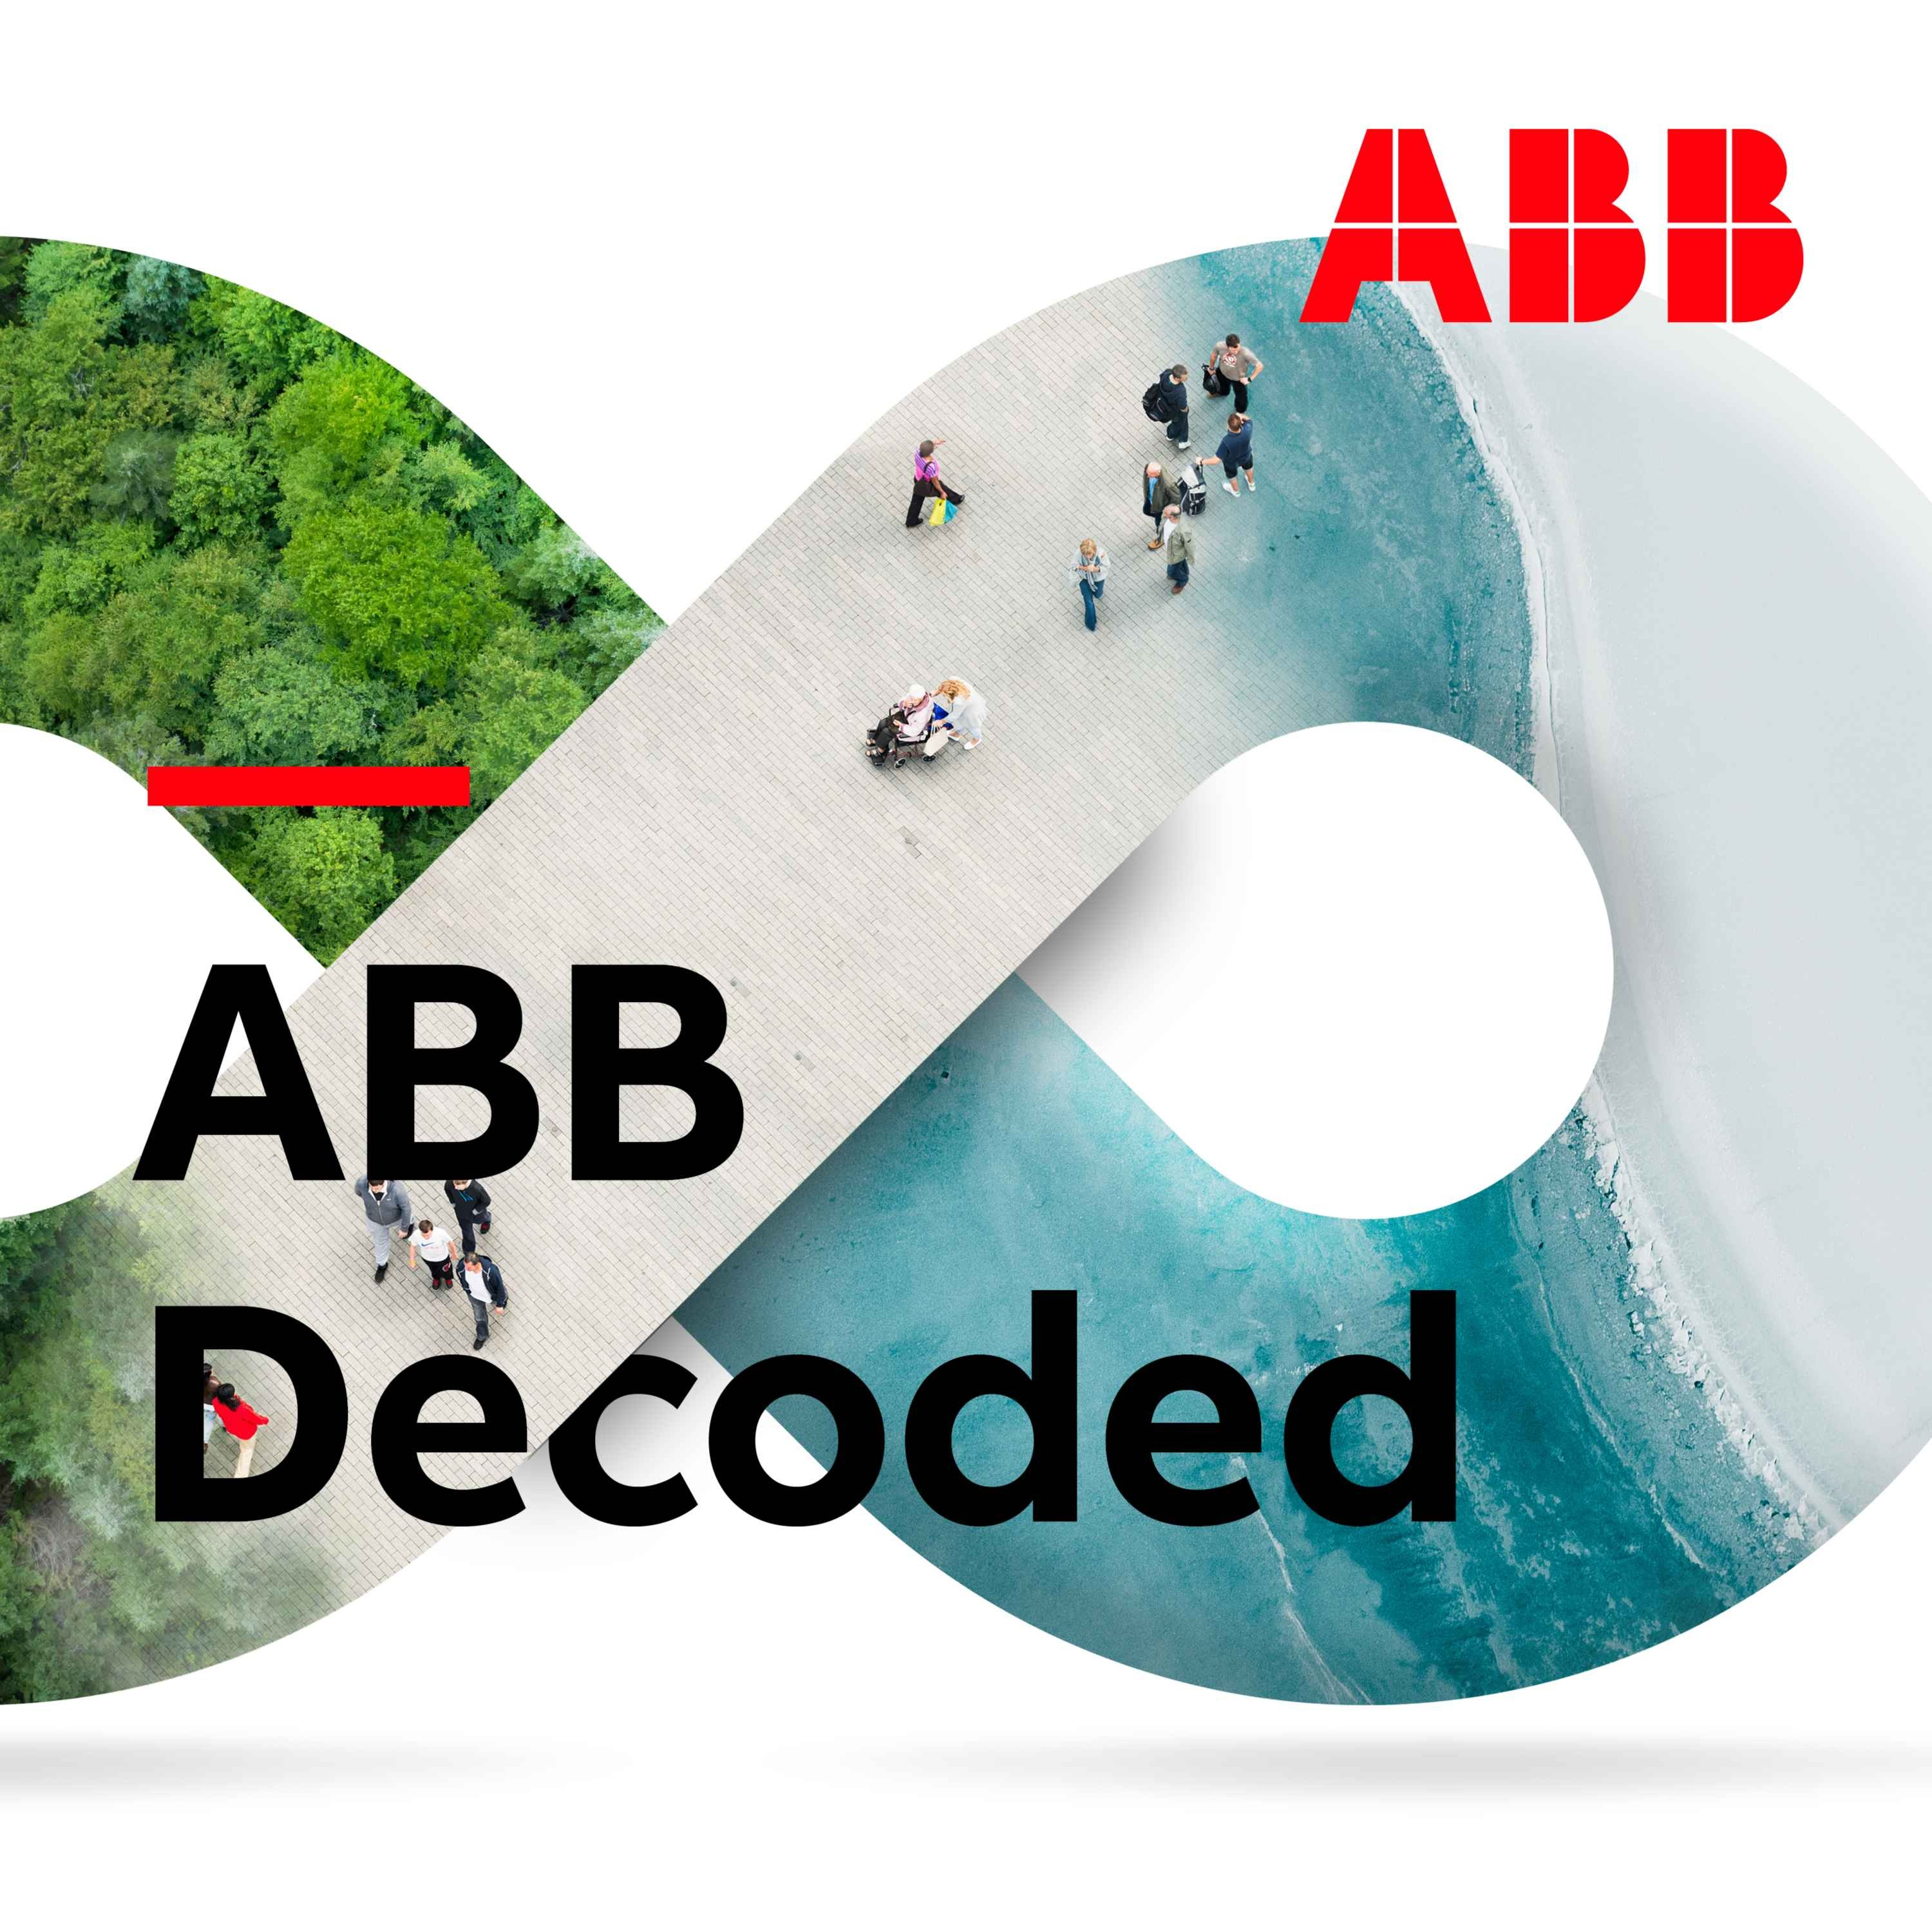 What Sustainability means to ABB